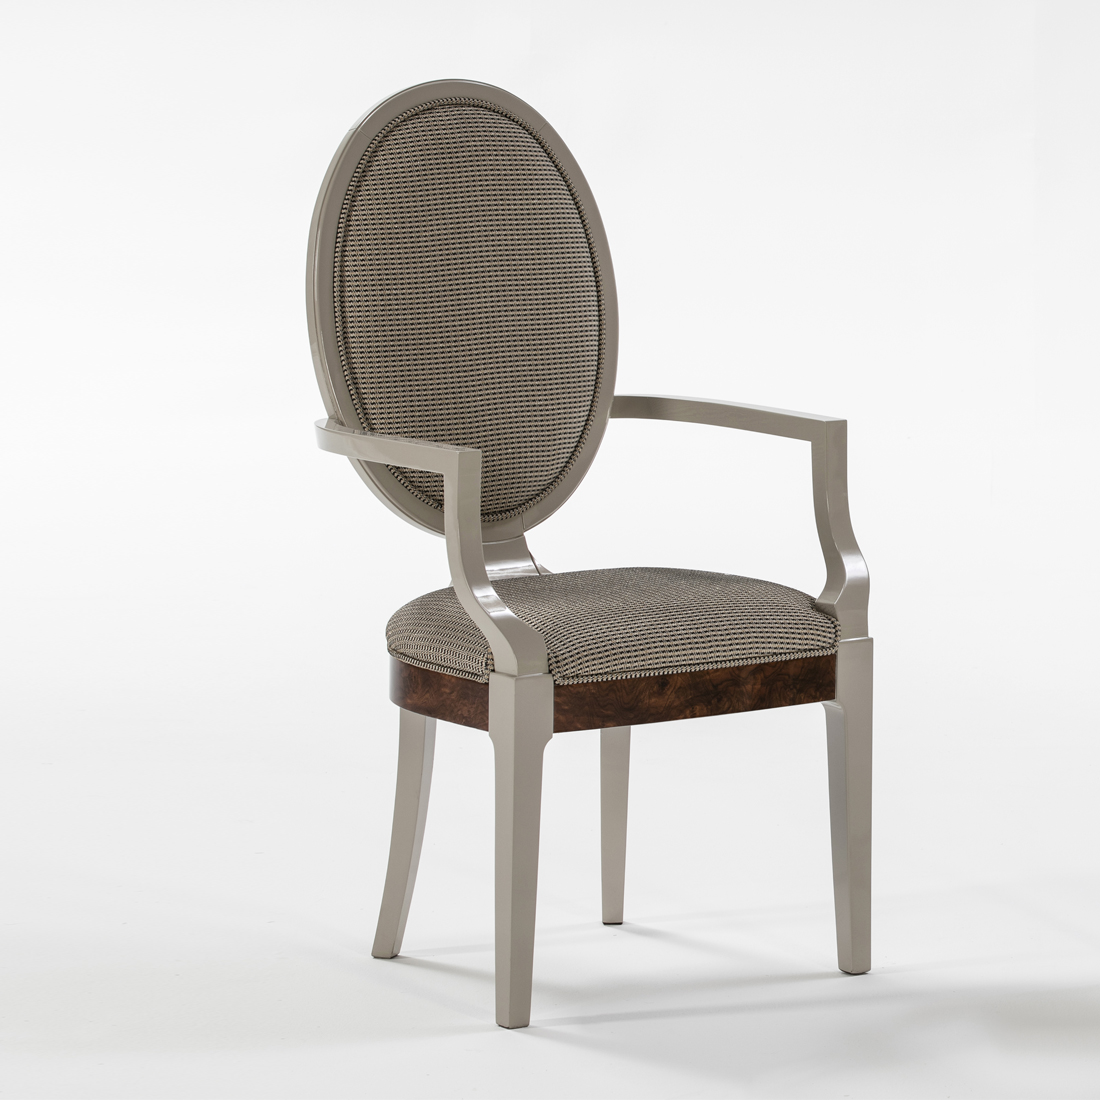 luxury dining chairs, high end dining chair